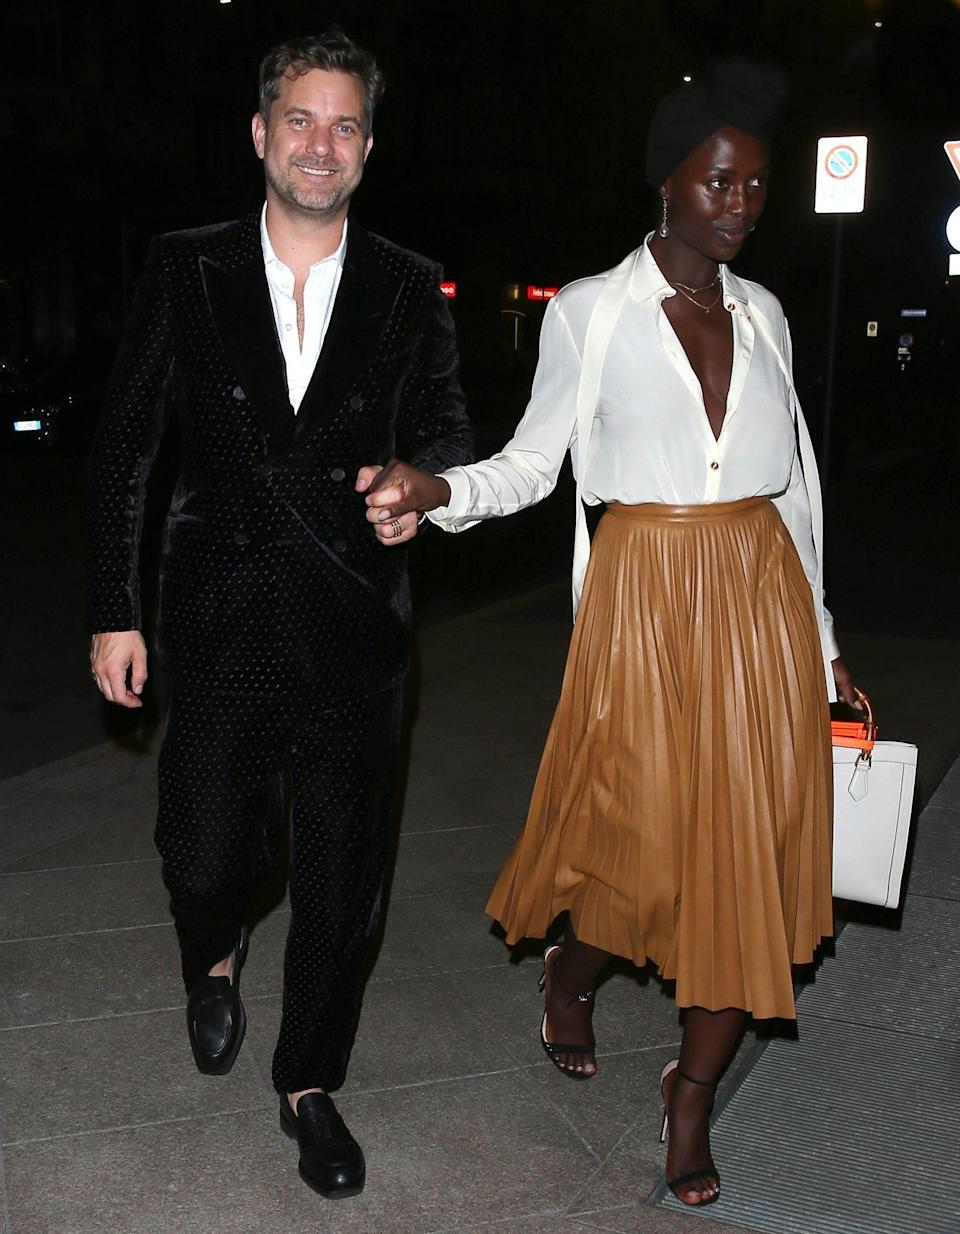 <p>Joshua Jackson and Jodie Turner-Smith get all glammed up for an evening out in Milan, Italy, on Sept. 23. </p>